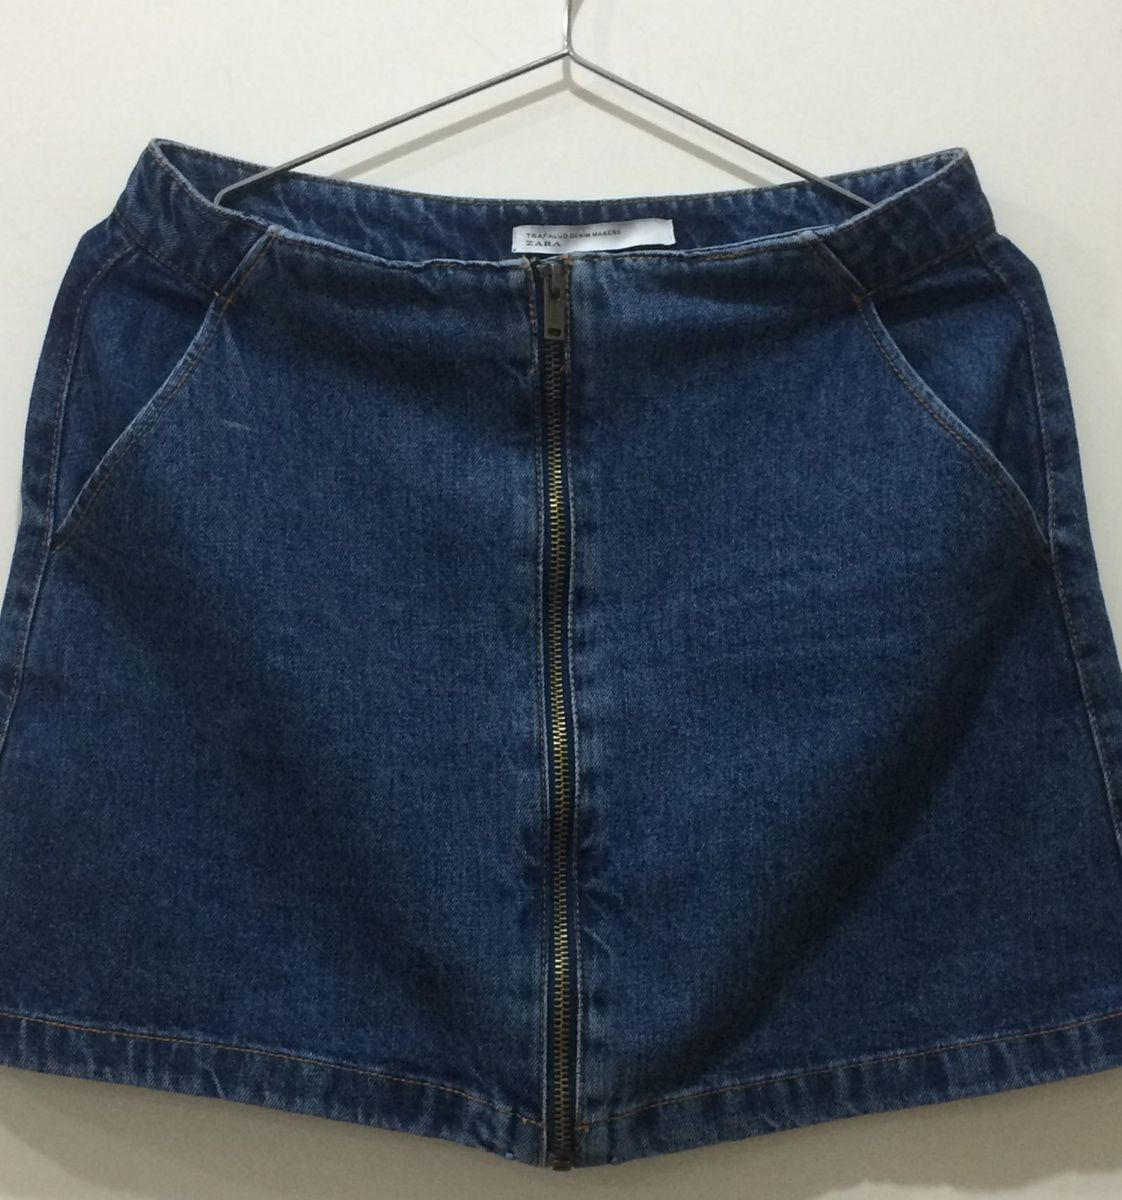 752af9c745 mini saia jeans zara - saias trafaluc denim makers